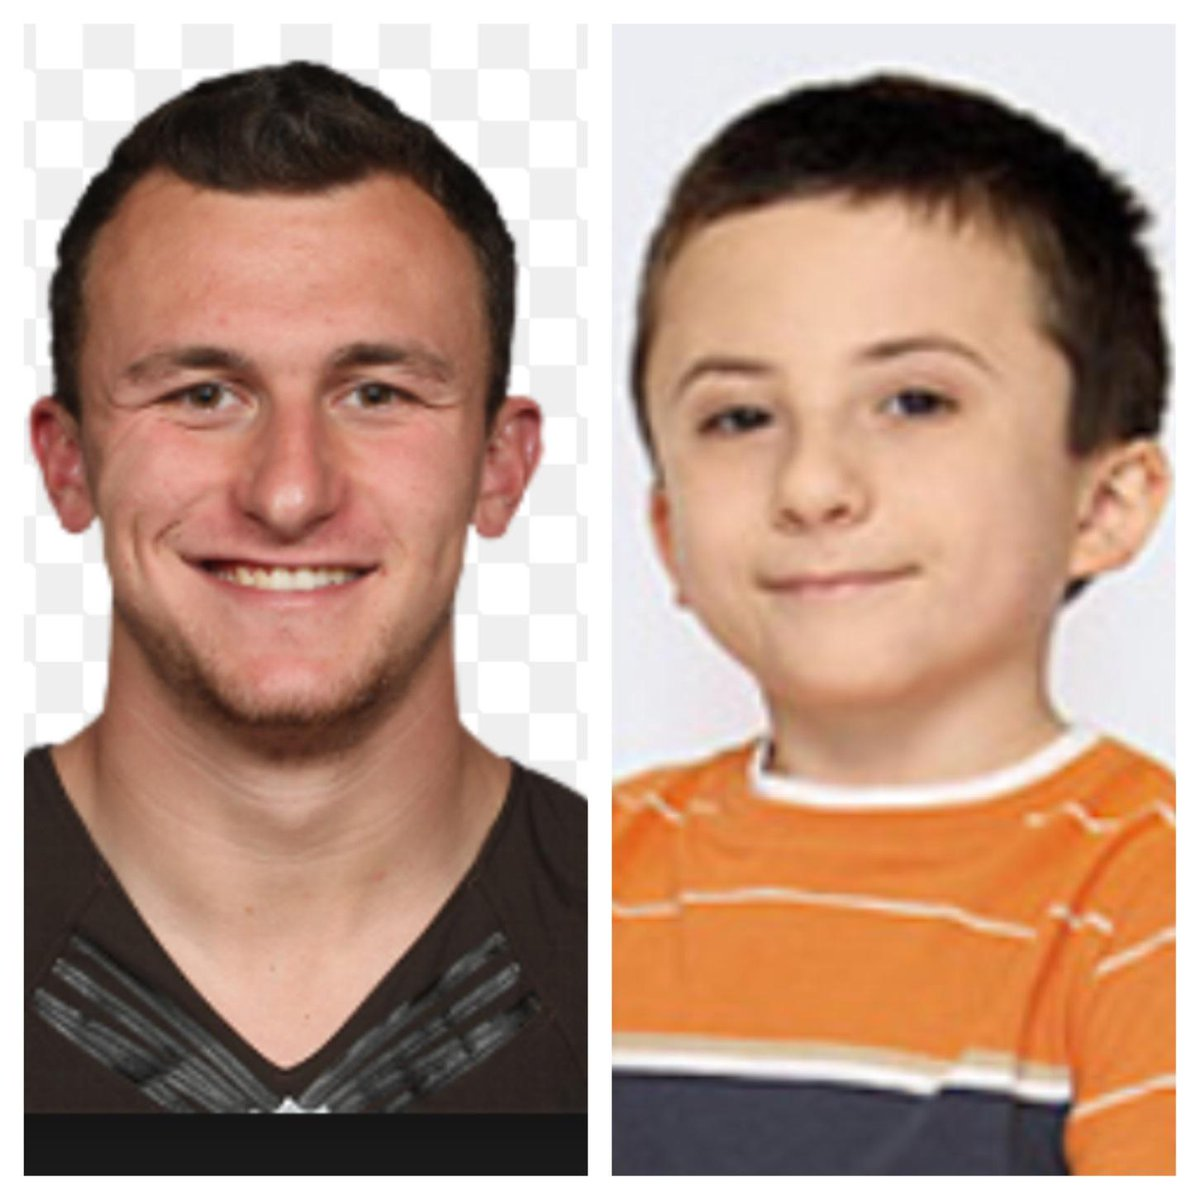 Michael Bucchieri On Twitter Does Anyone Else Feel Like Johnny Manziel Looks Brick From The Middle Id Rather Have My Team